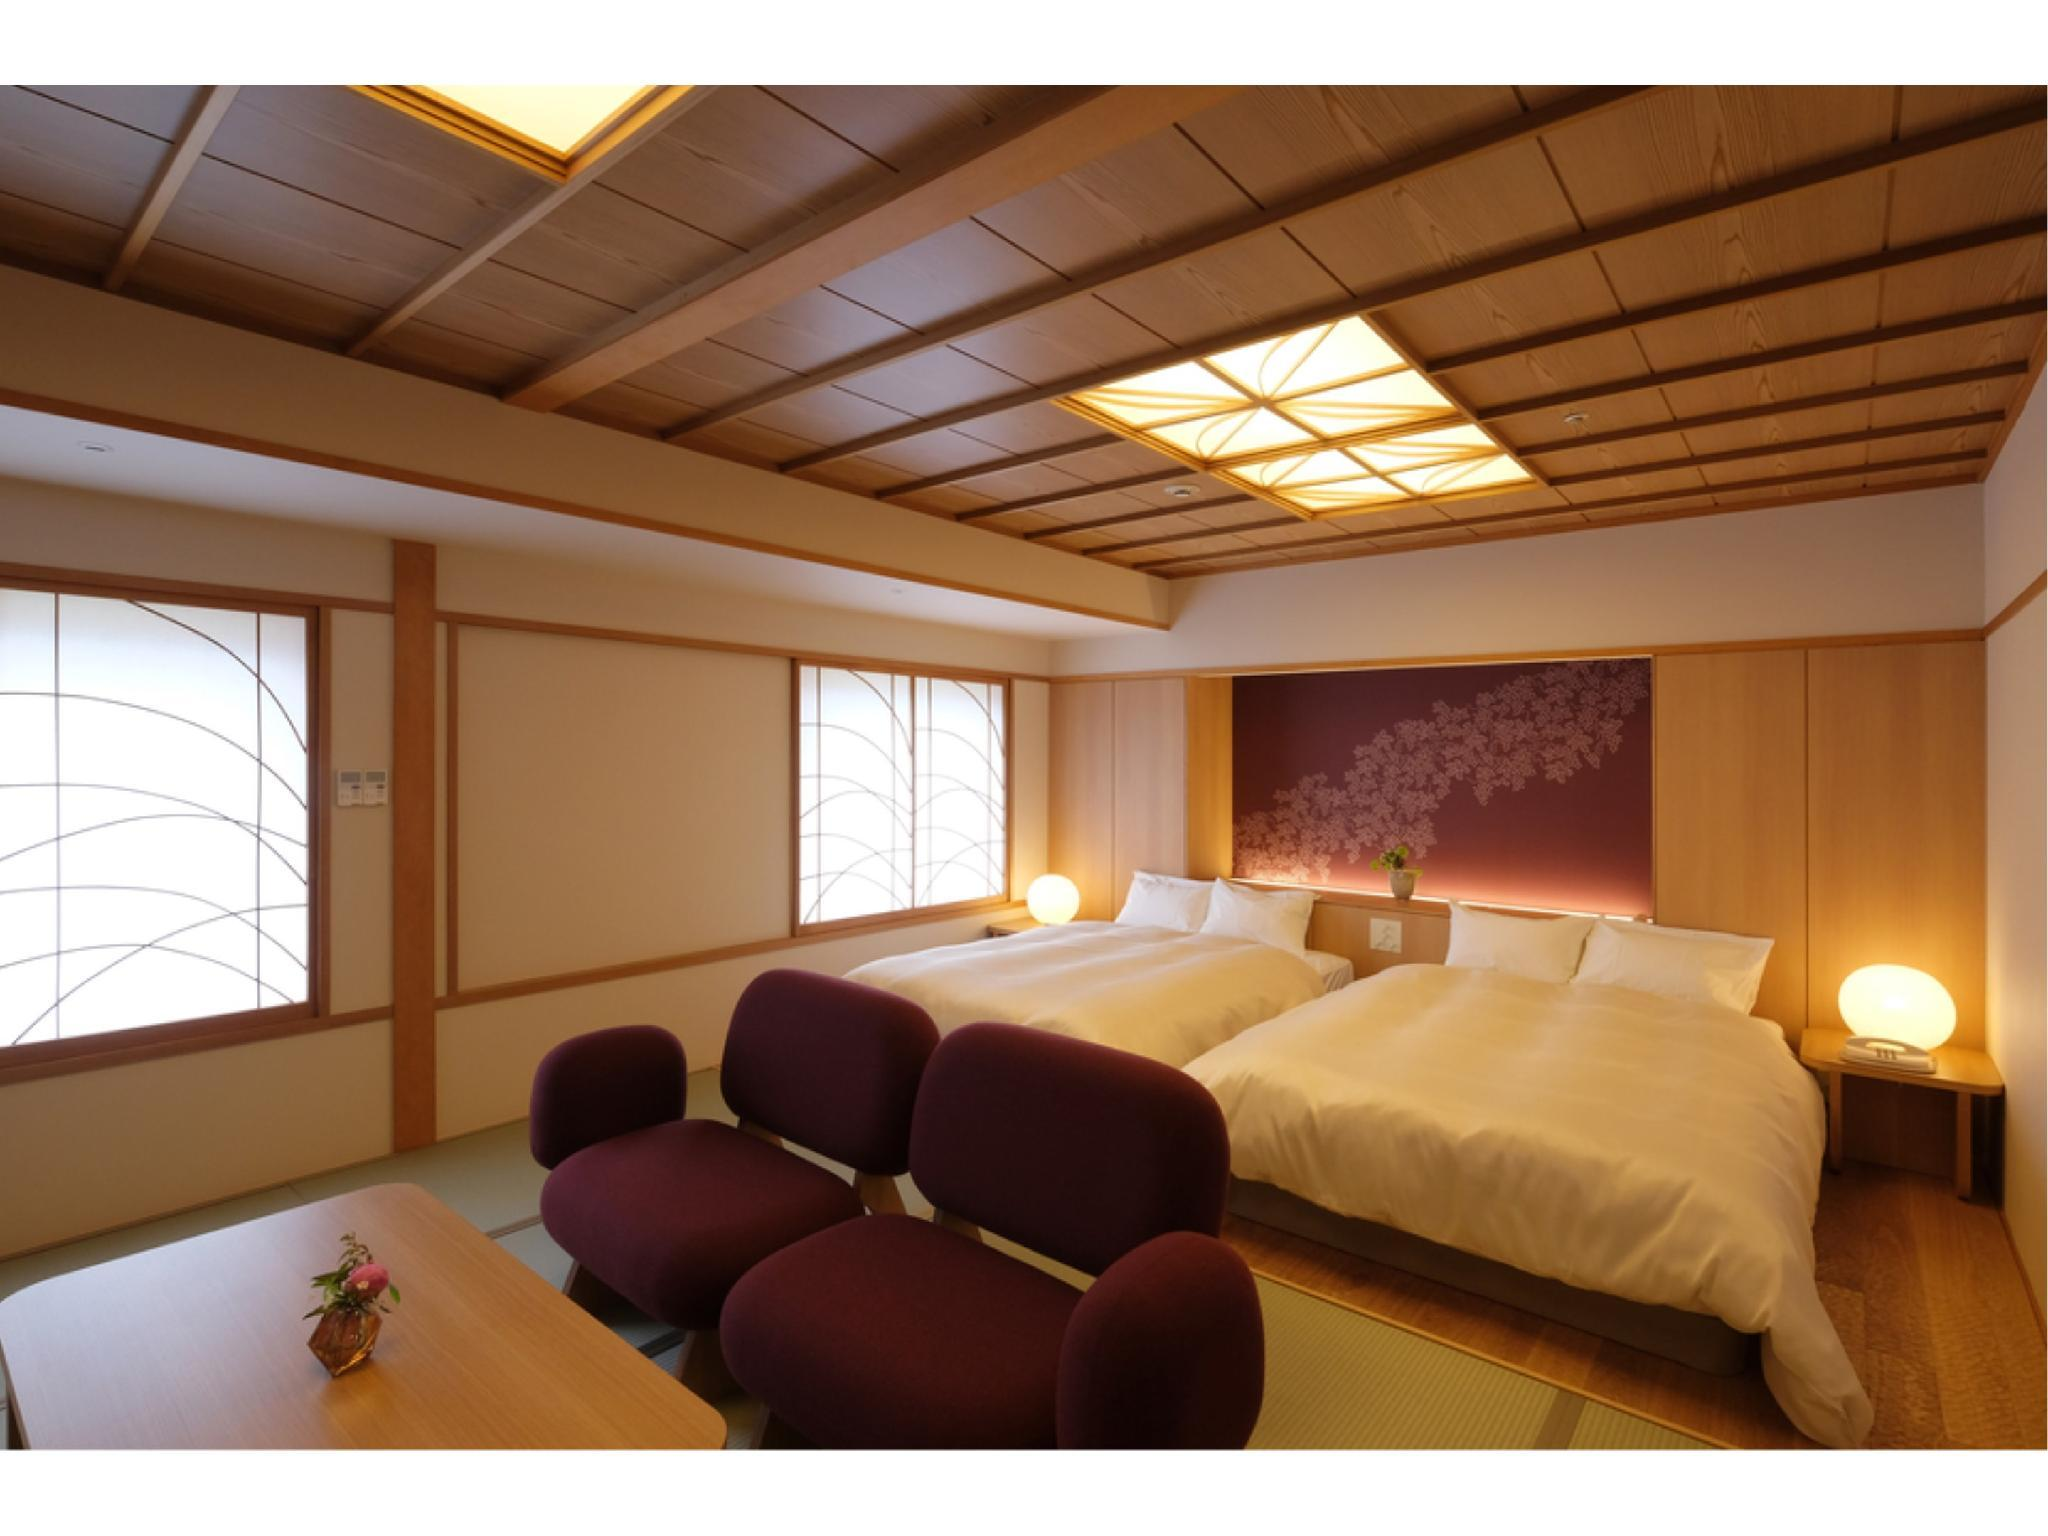 트윈룸 (Modern Japanese-style Twin Room or Modern Japanese Wood Room)